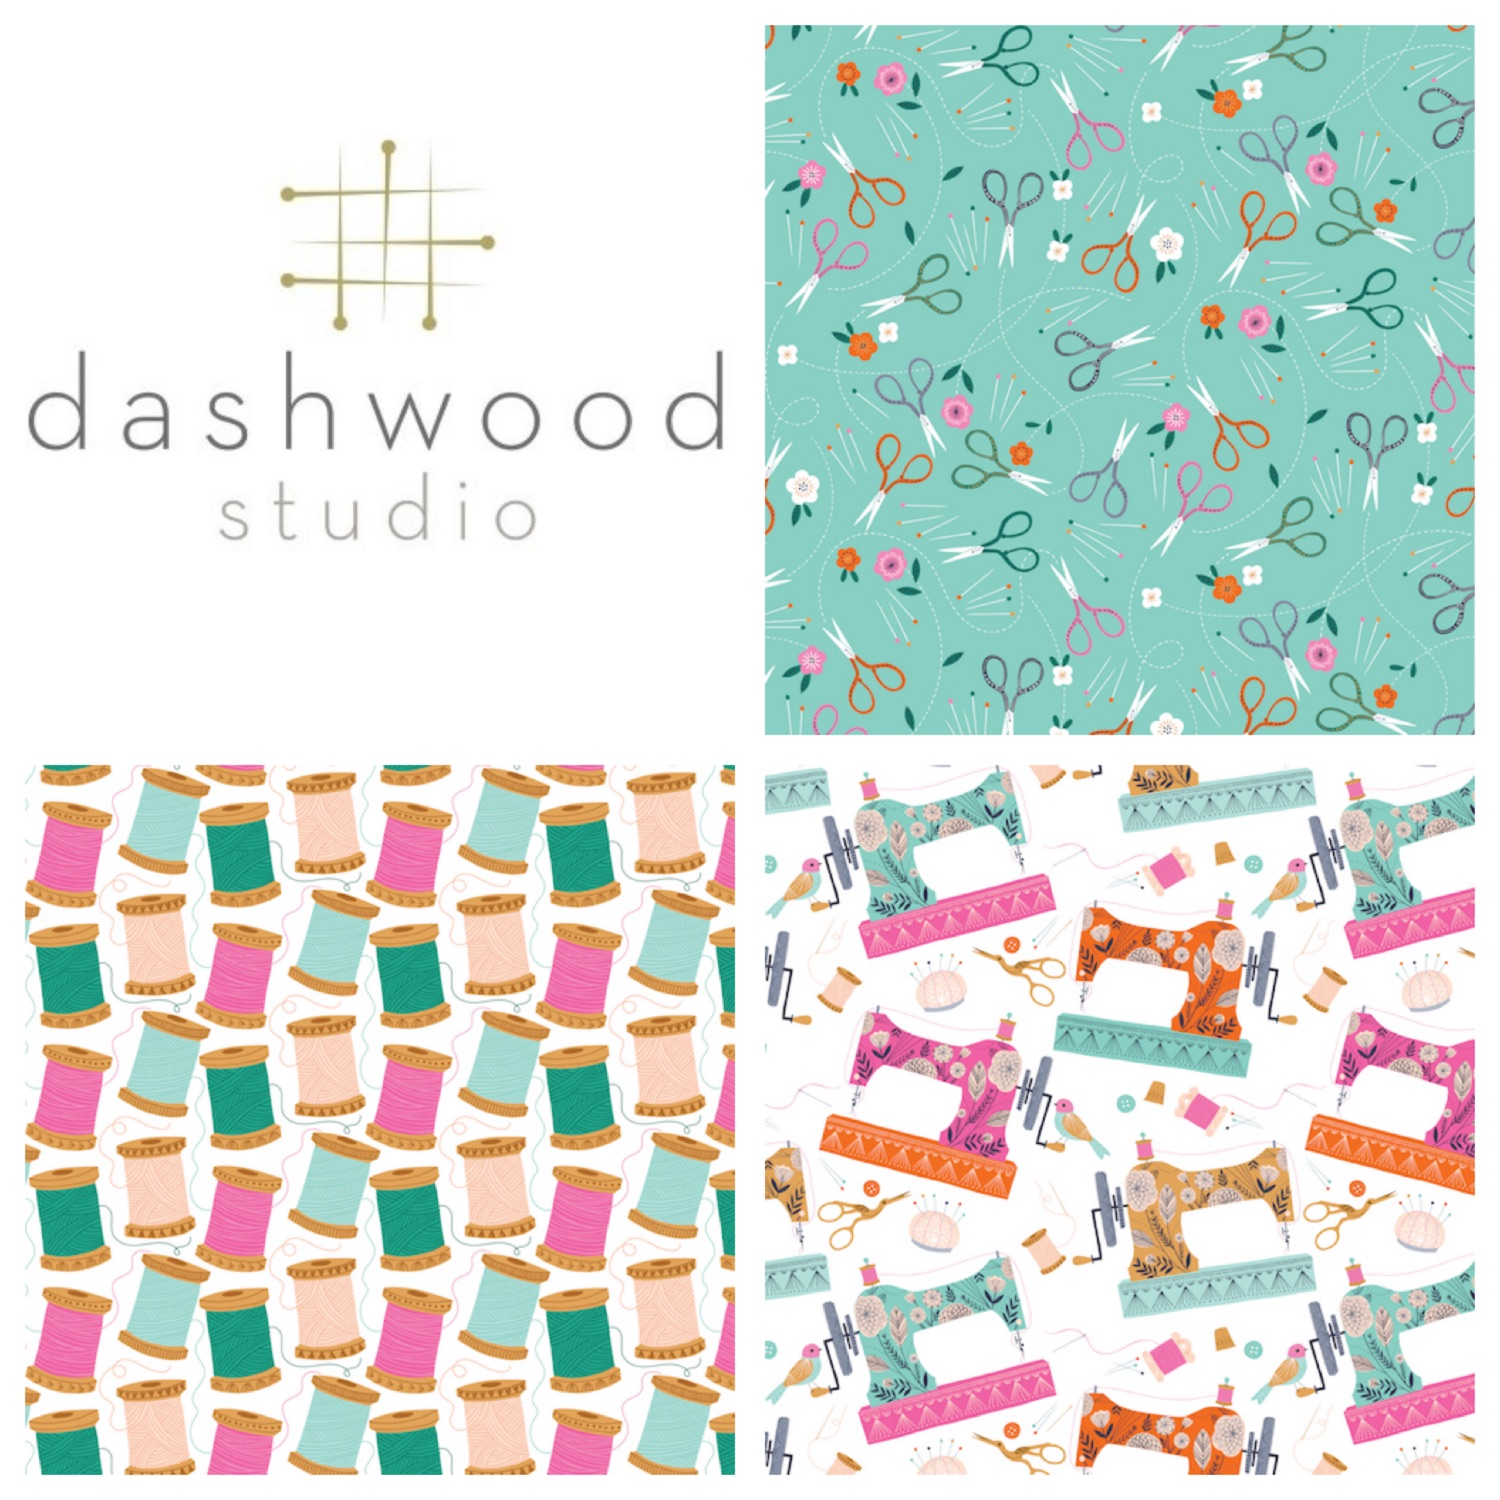 Dashwood studio stitch